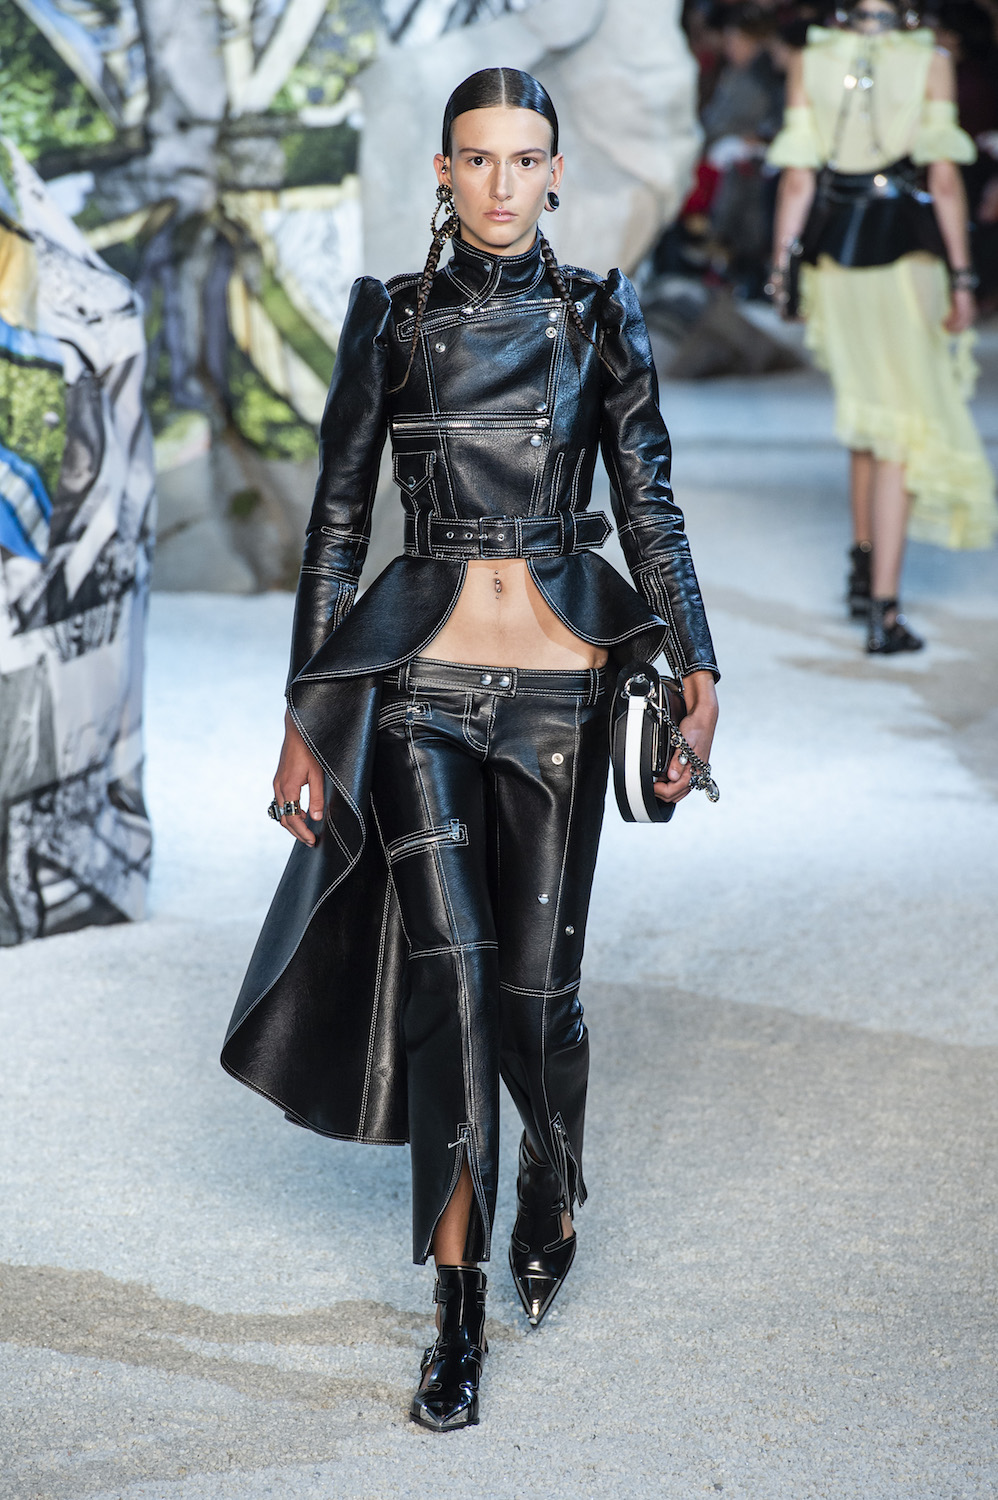 Alexander McQueen s Spring Collection Reminds Us of Fashion s Fantasy Side.  41 OPEN GALLERY 4a9ea6a523548